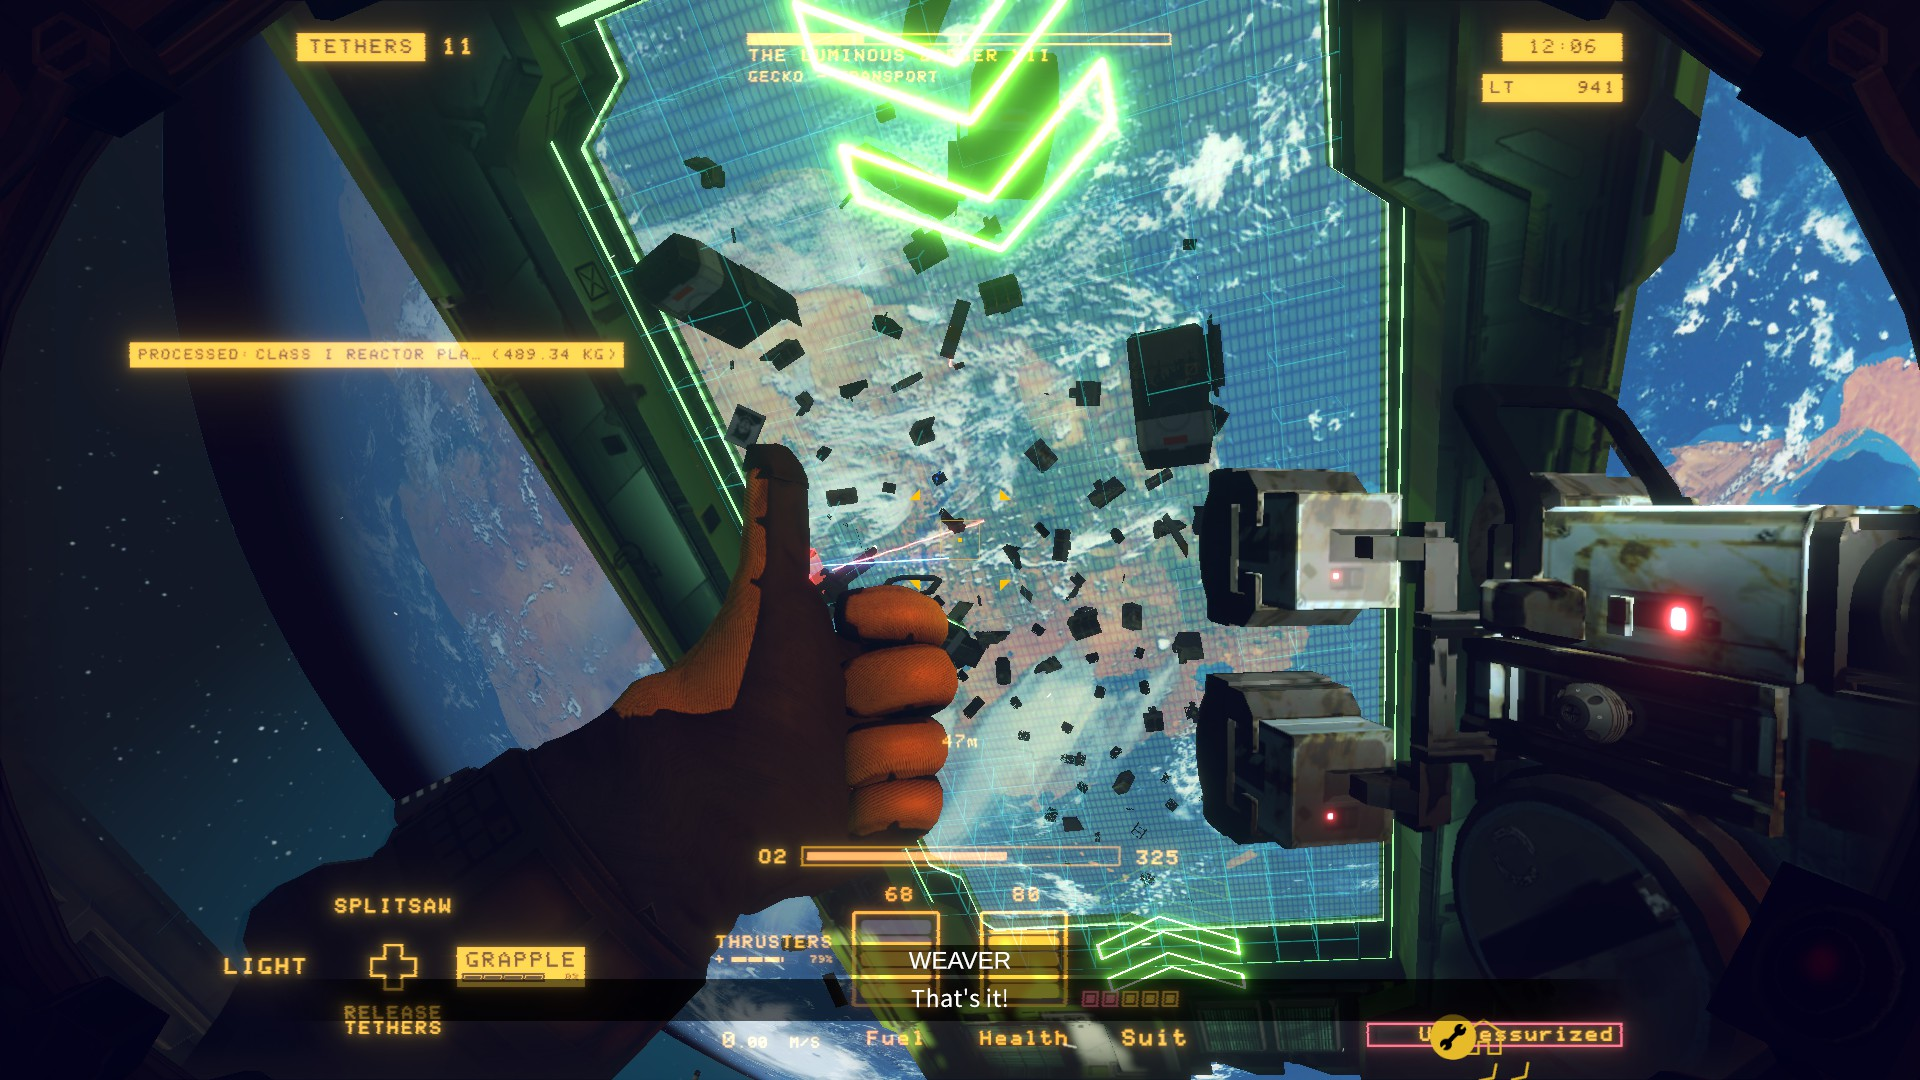 A screenshot of the player sorting salvage in Hardspace Shipbreaker